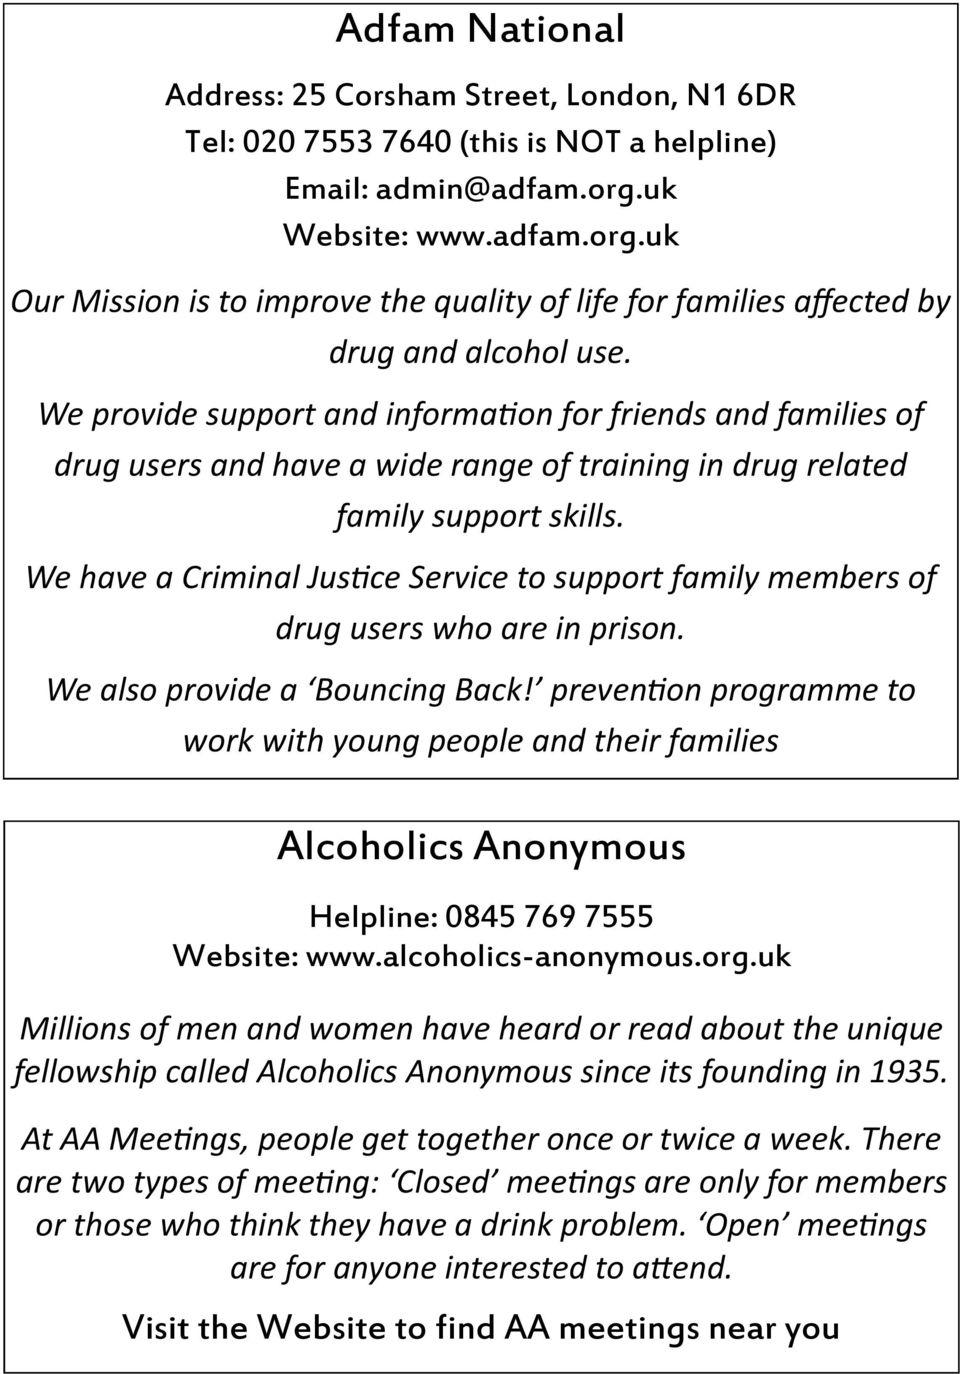 We provide support and information for friends and families of drug users and have a wide range of training in drug related family support skills.